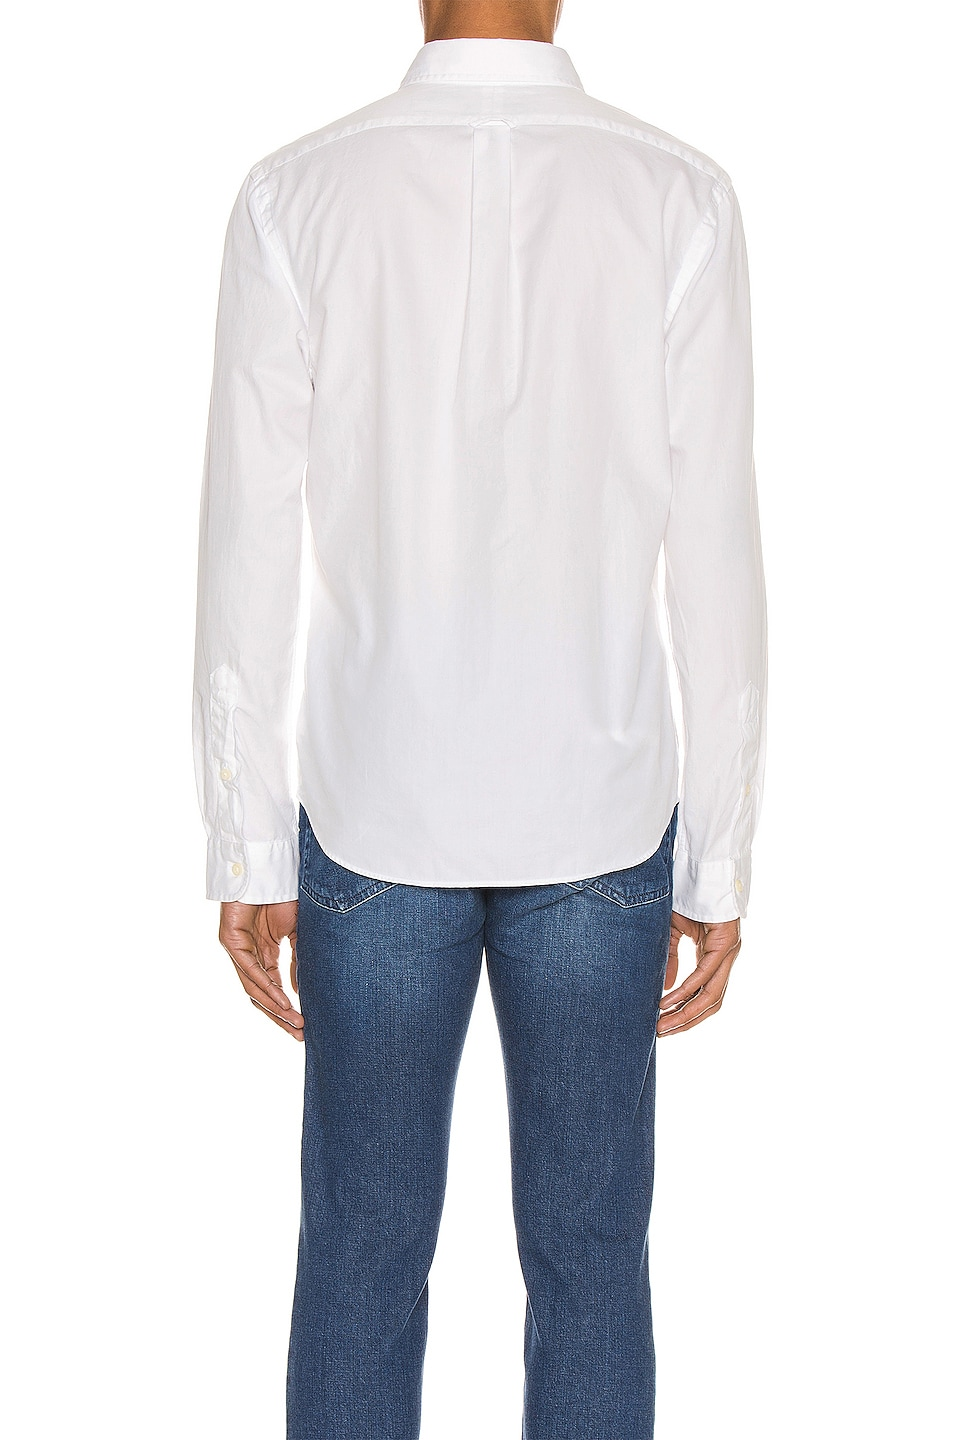 Image 3 of Polo Ralph Lauren GD Chino Long Sleeve Button Up Shirt in White